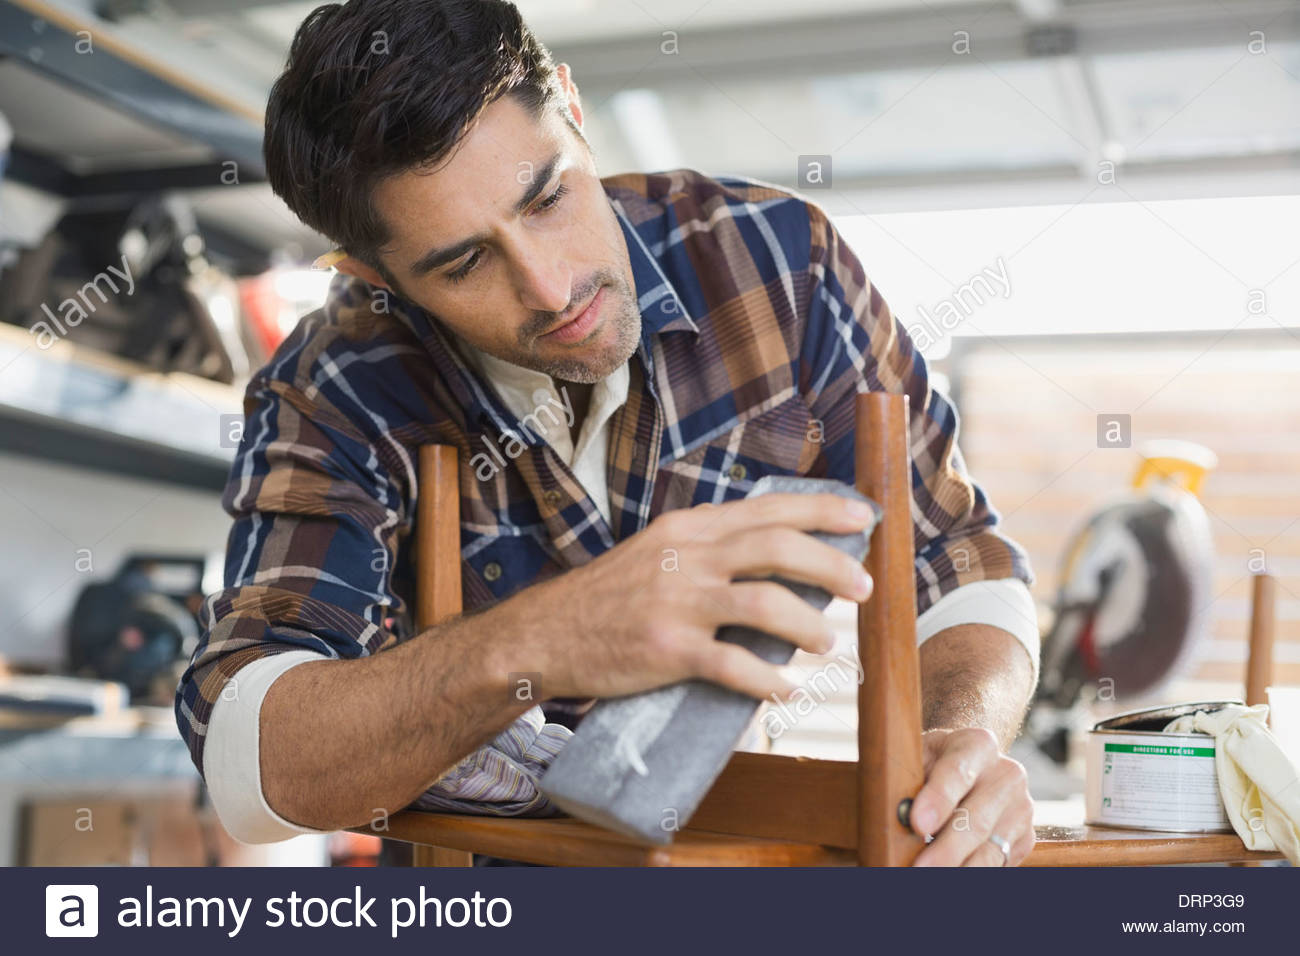 Carpenter working in workshop - Stock Image